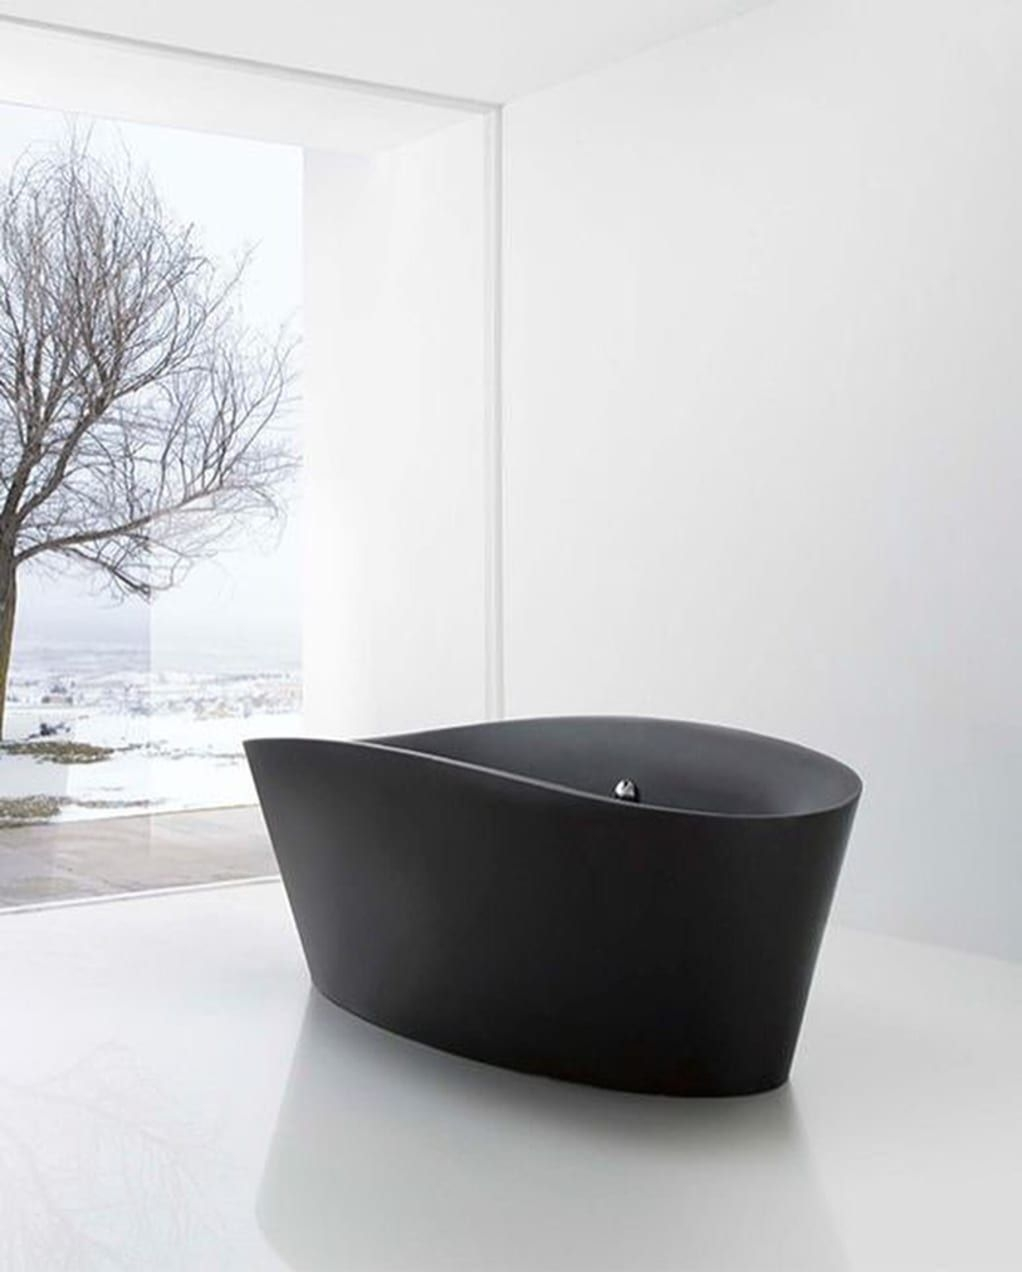 Attirant An Interesting A Bit Futuristic Bathtub Crafted Of Matte Black Acrylic. It  Has An Elongated Ovalish Tapered Downwards Body And Elevated Edges On  Longer ...